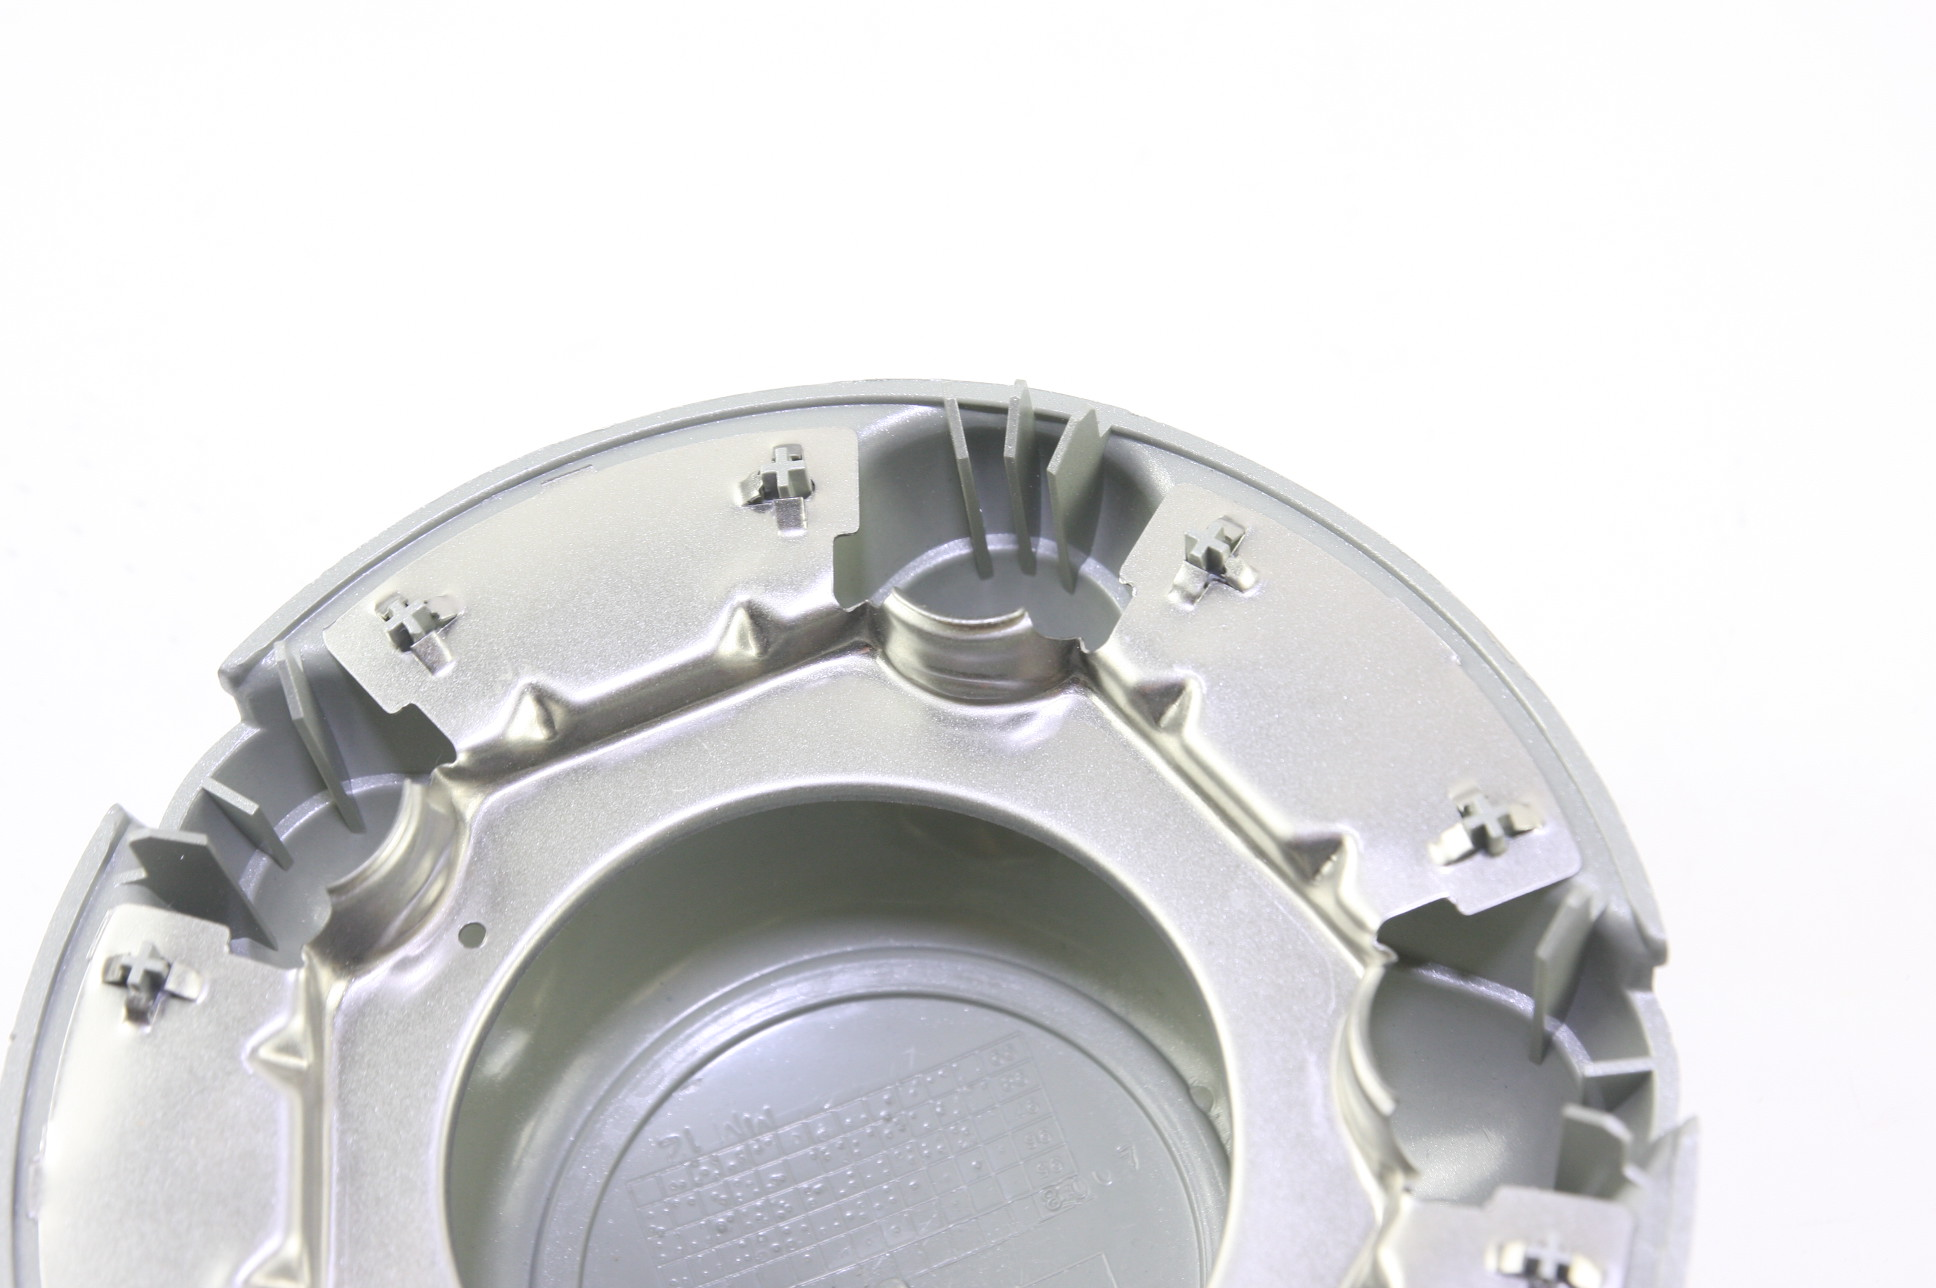 ** New OEM F65Z1130AA Ford 97-00 F-150 Wheel Cover Hub Center Cap Free Shipping - image 7